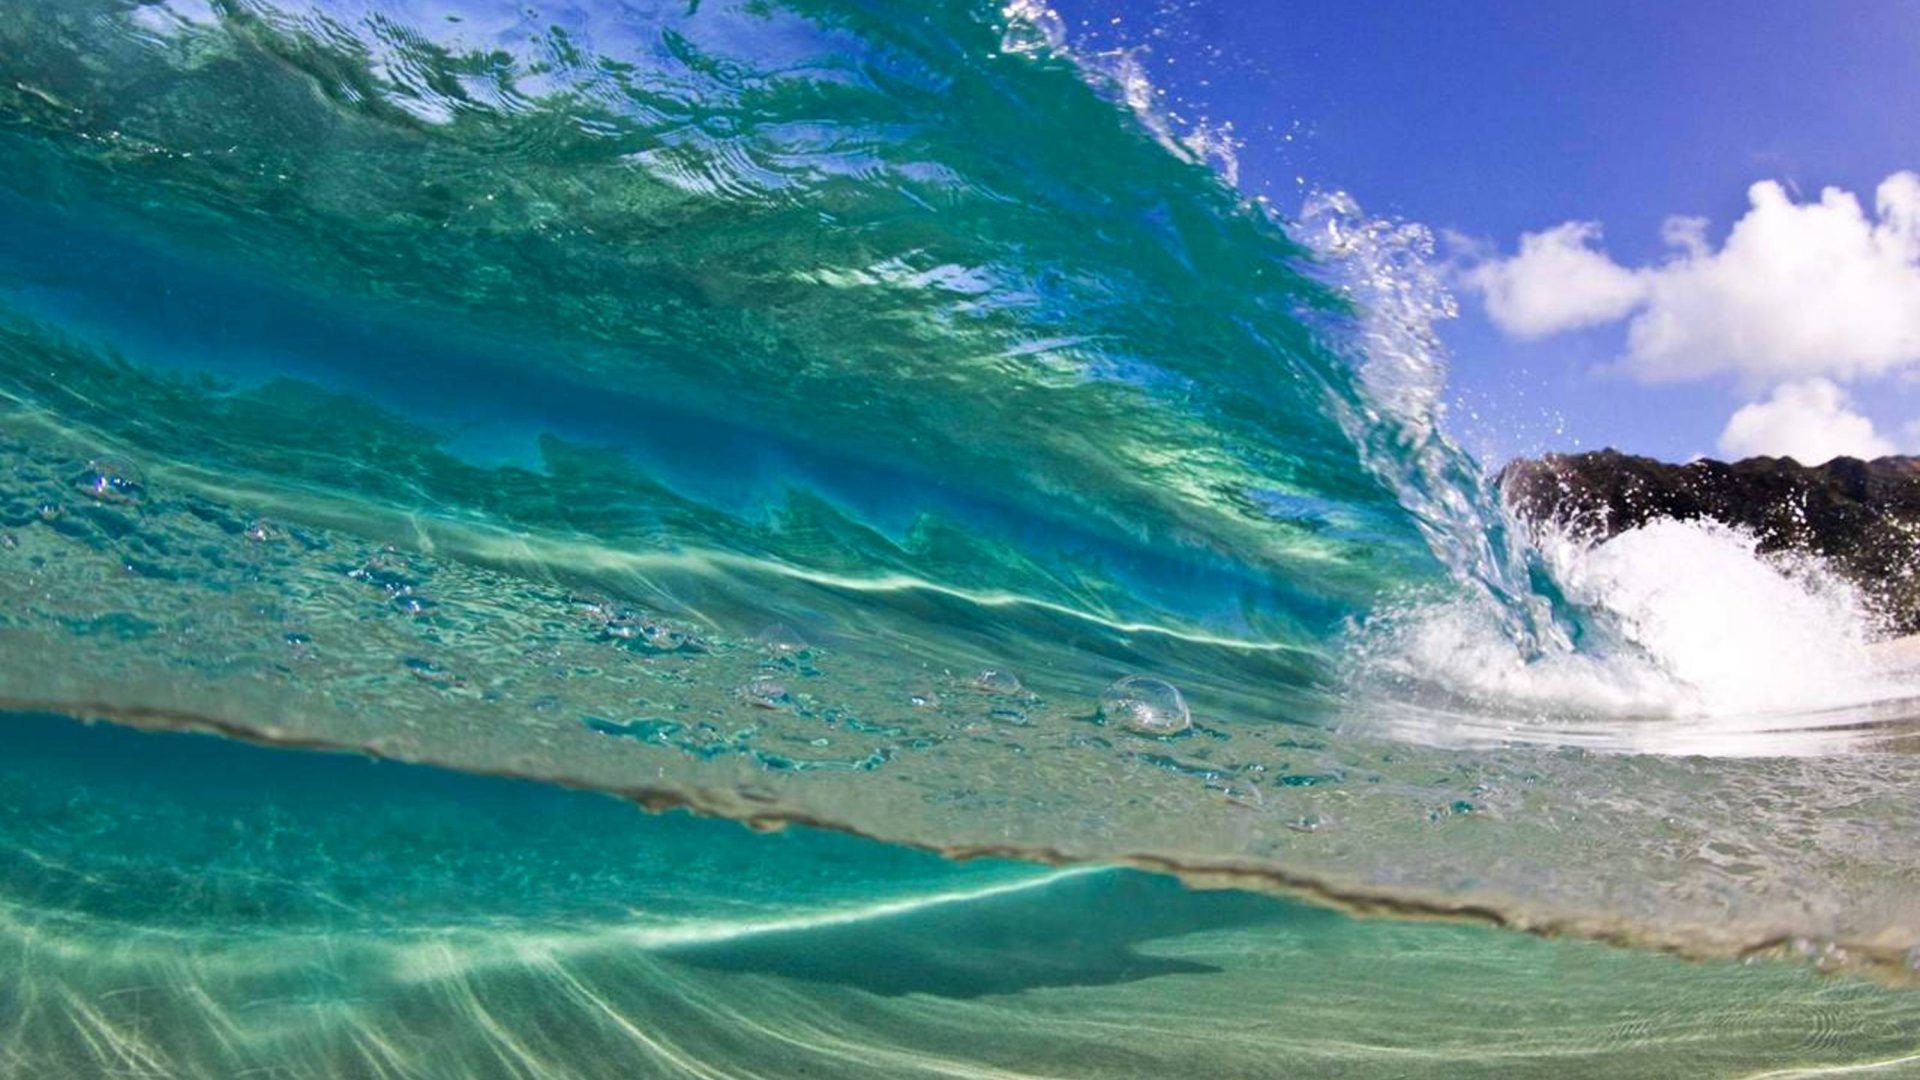 Surfing Wallpaper 1920x1080 (76+ images)